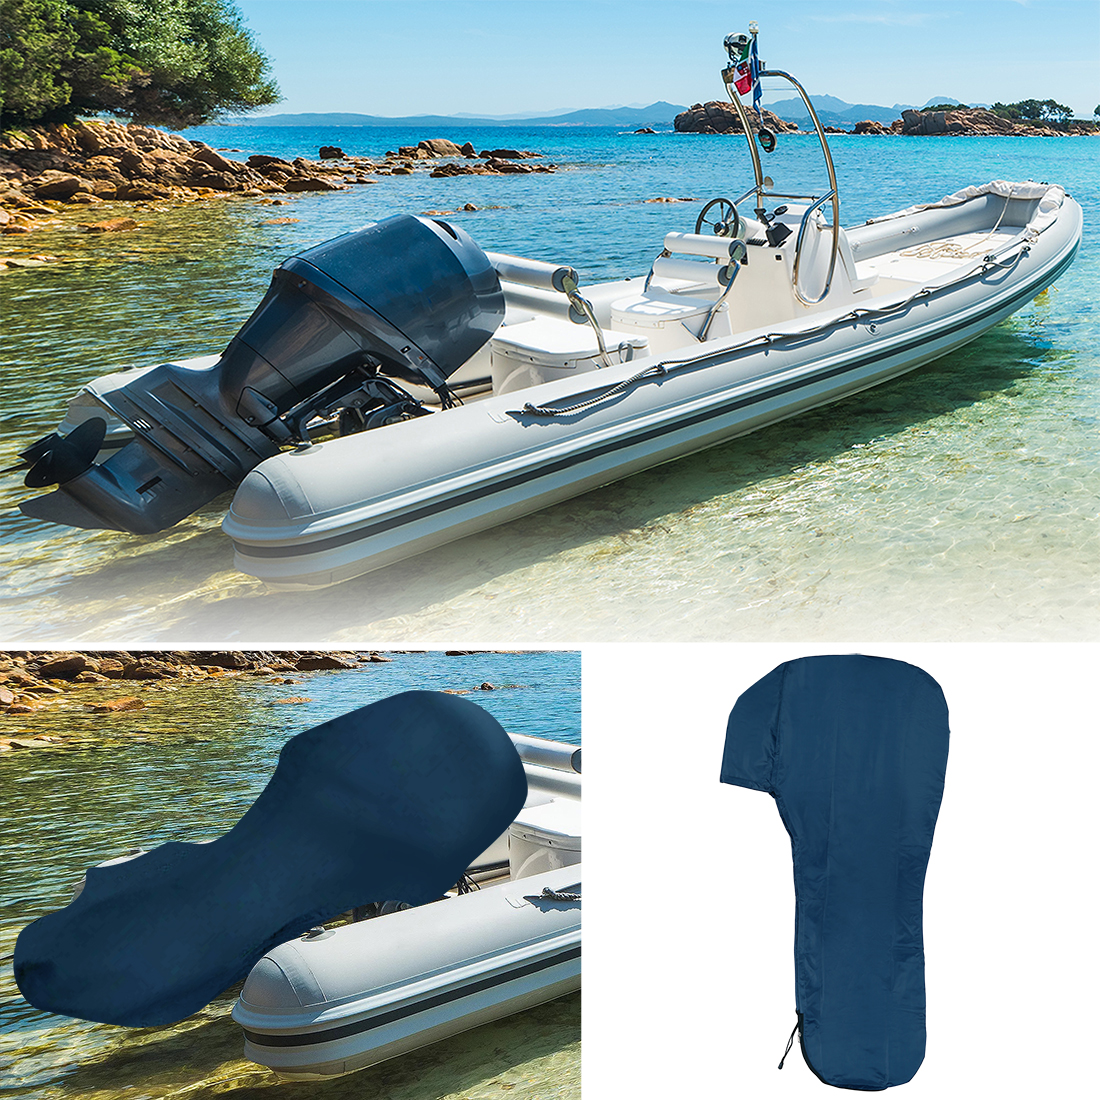 Full Outboard Boat Motor Engine Cover Waterproof Protection for 200-300 HP